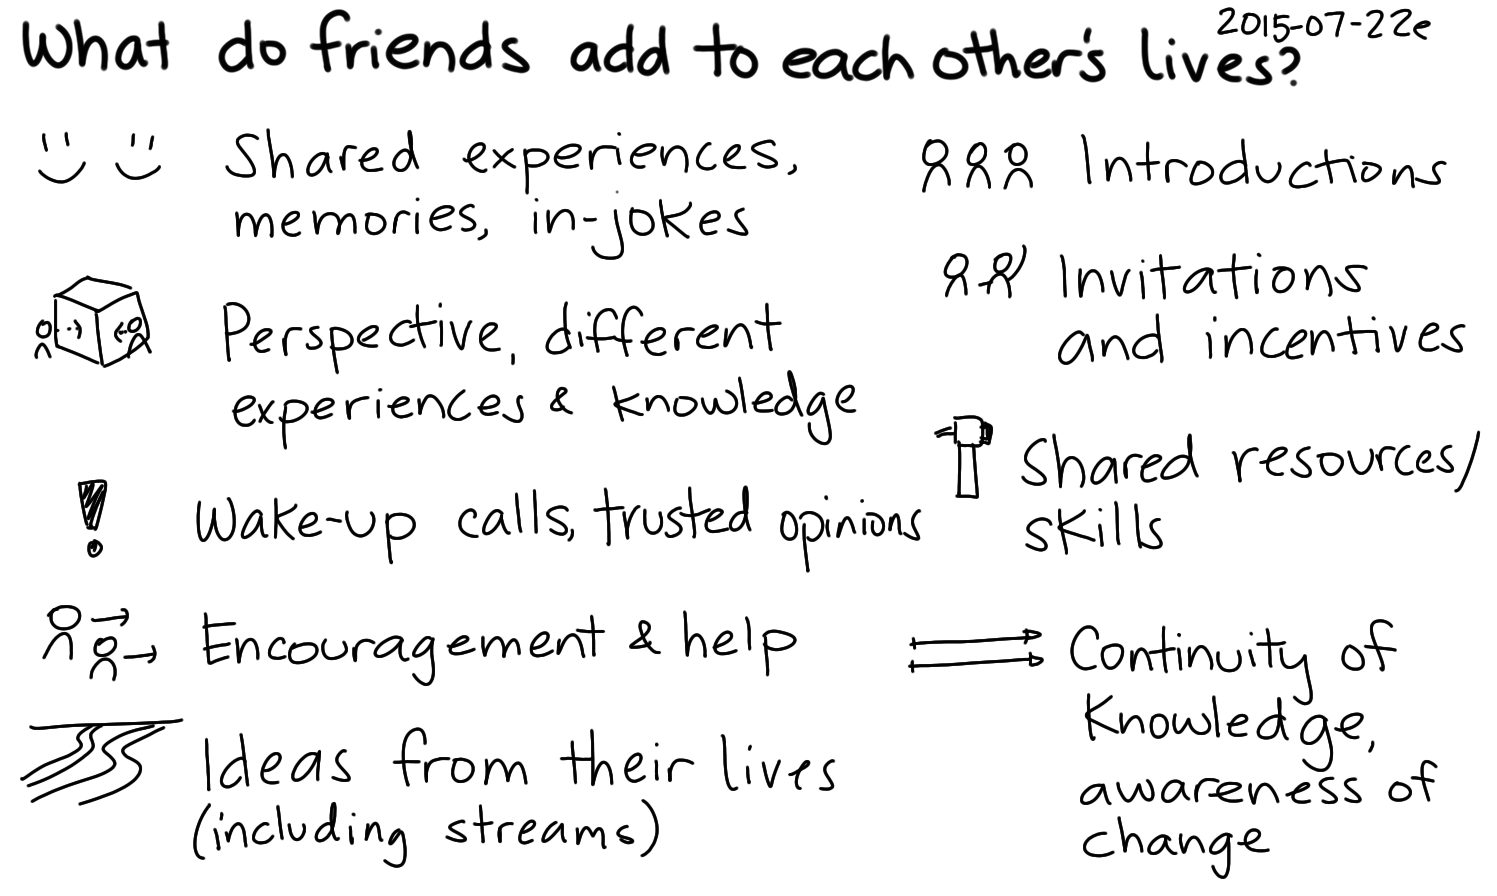 2015-07-22e What do friends add to each other's lives -- index card #connecting #friendship.png